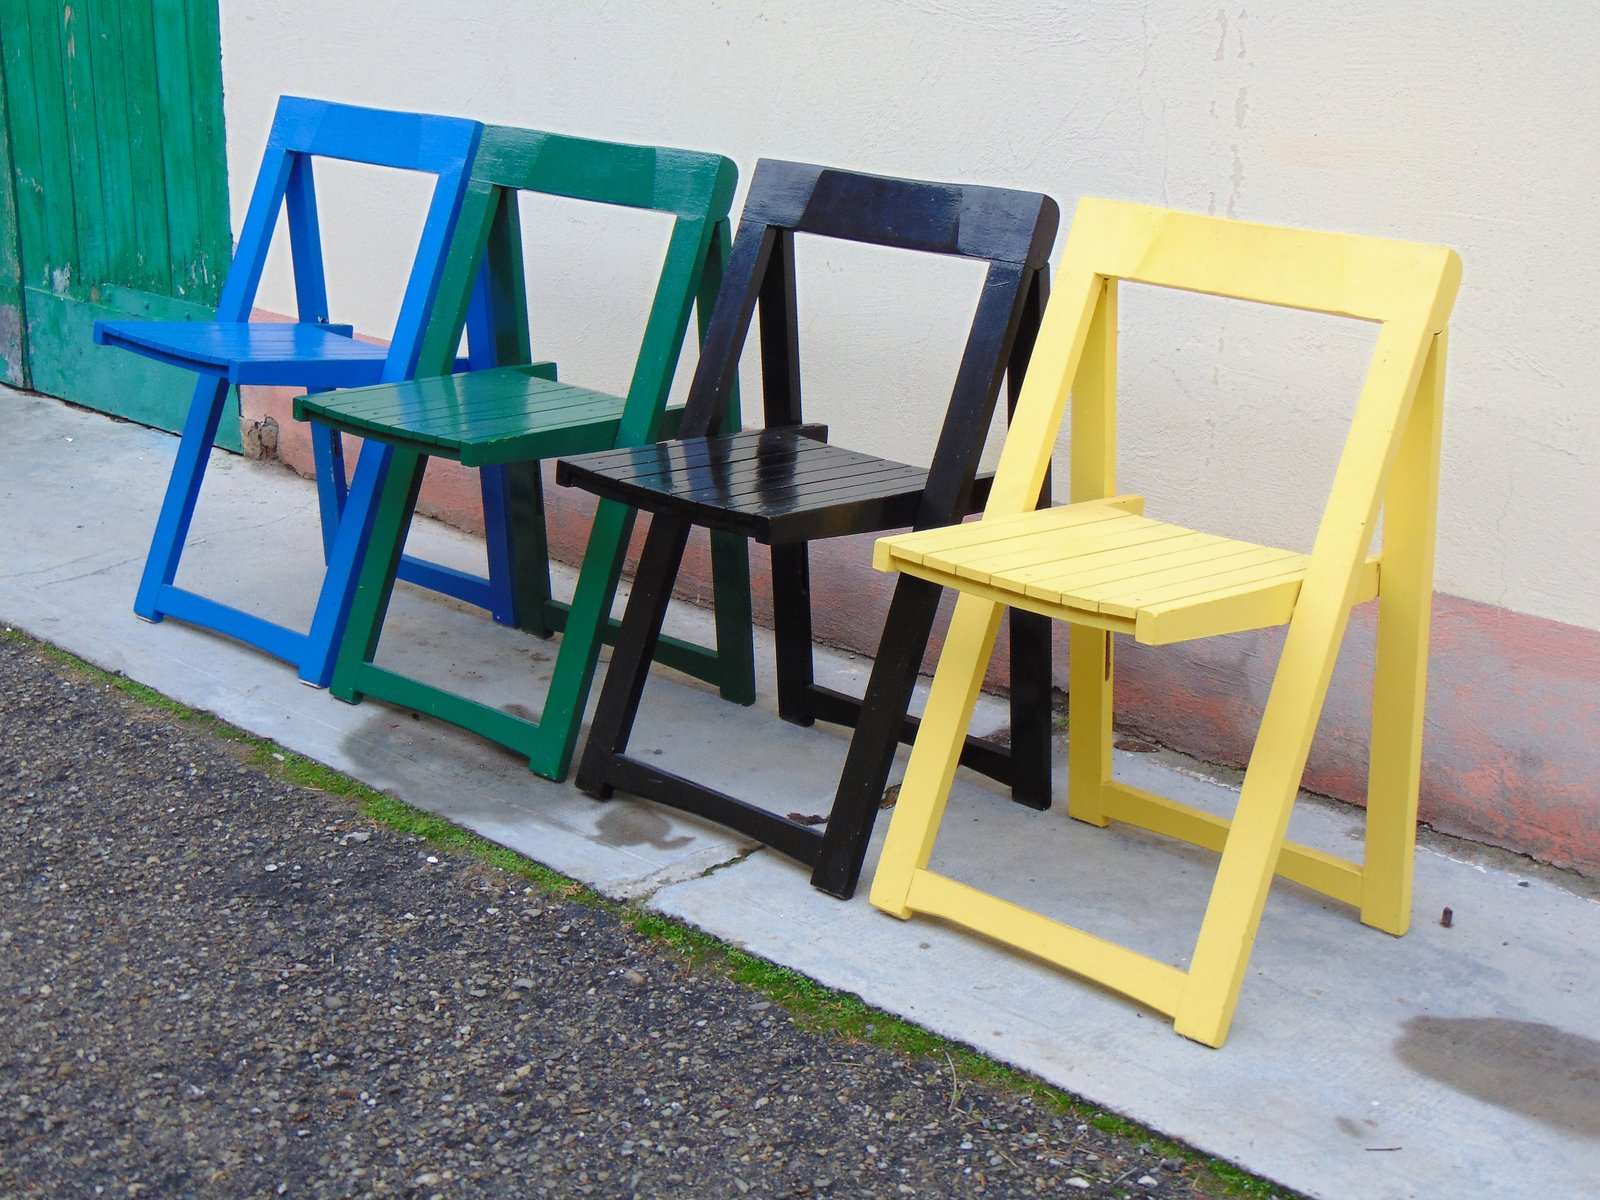 Gentil Vintage Folding Chairs By Aldo Jacober For Alberto Bazzani, Set Of 4